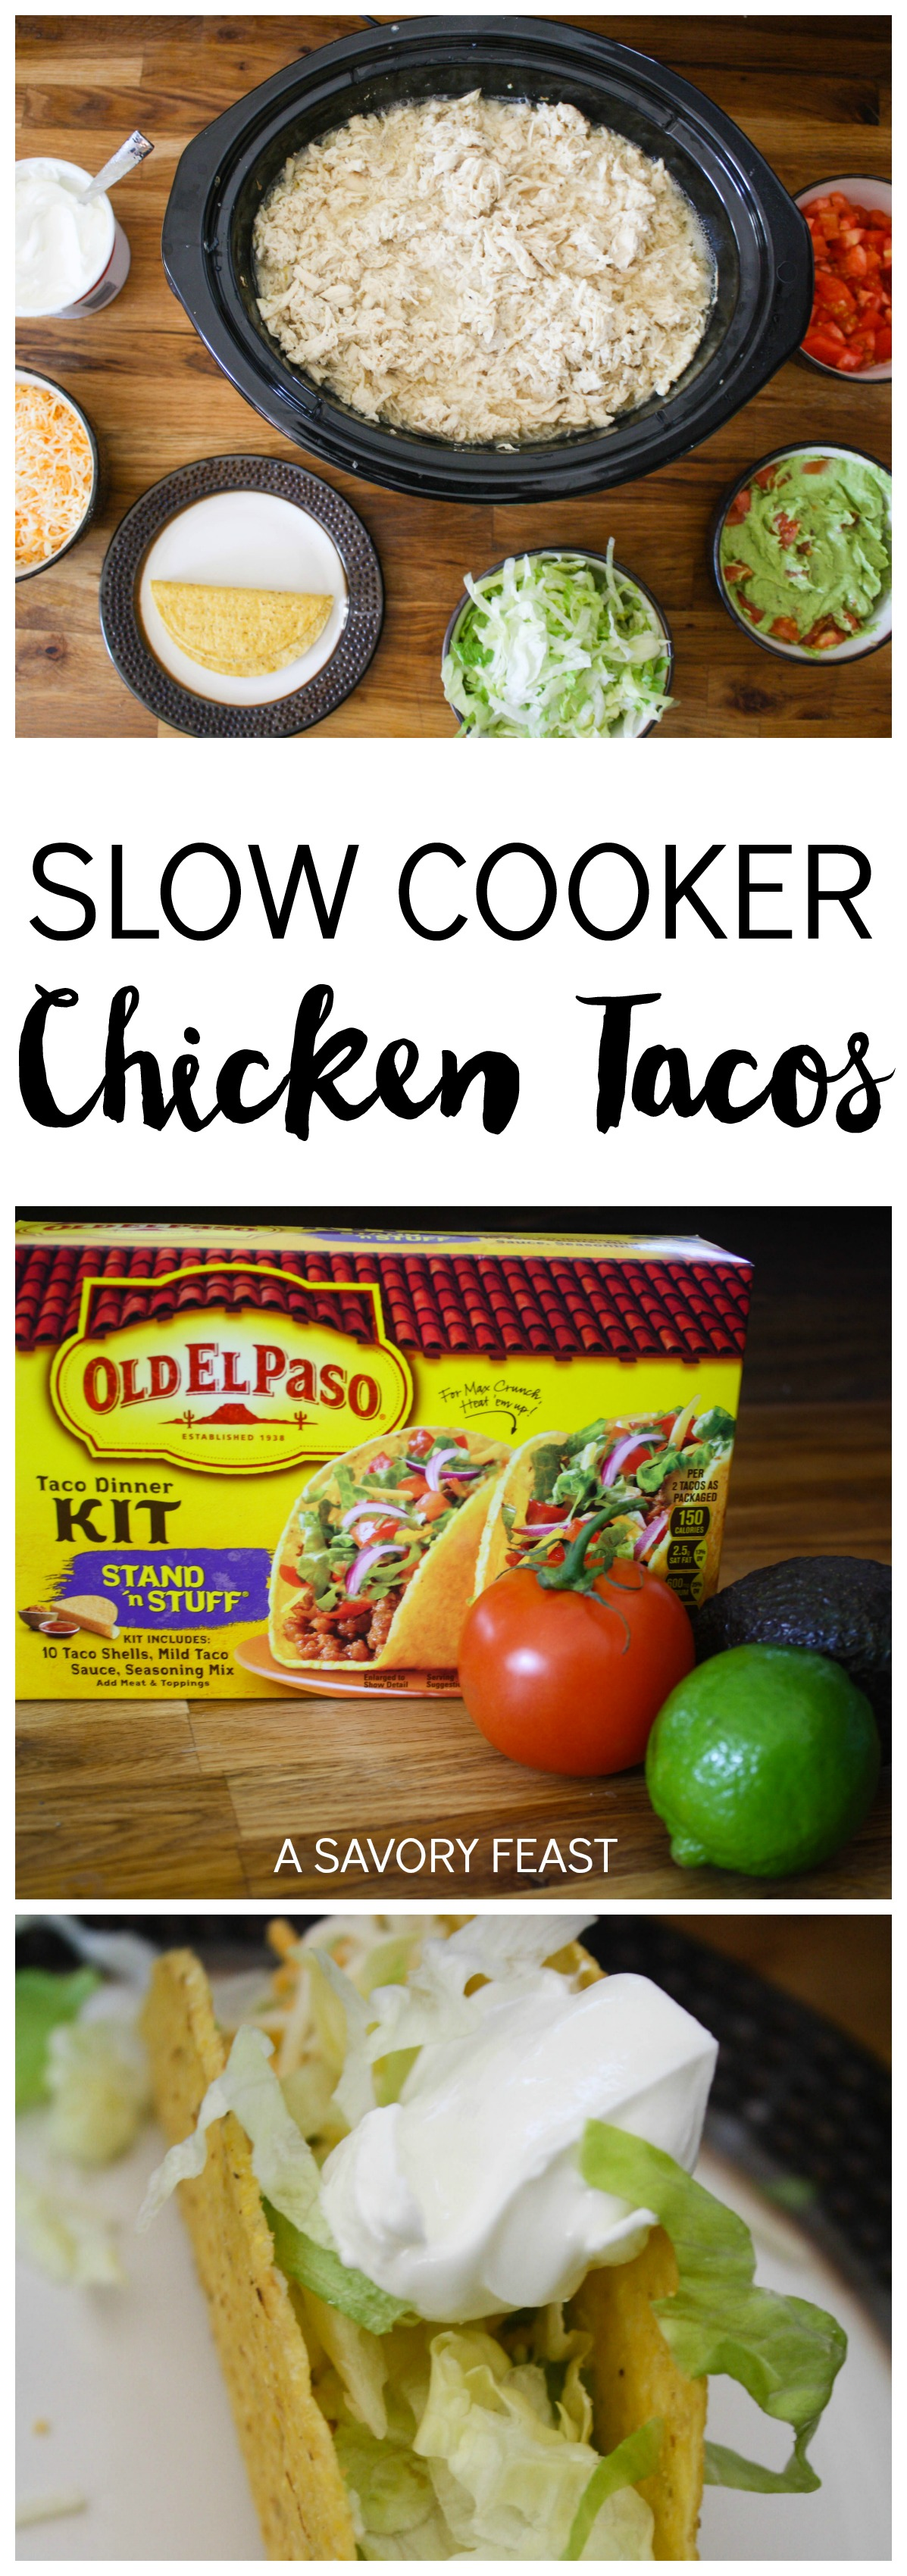 Slow Cooker Chicken Tacos // This is the perfect recipe to feed a crowd!